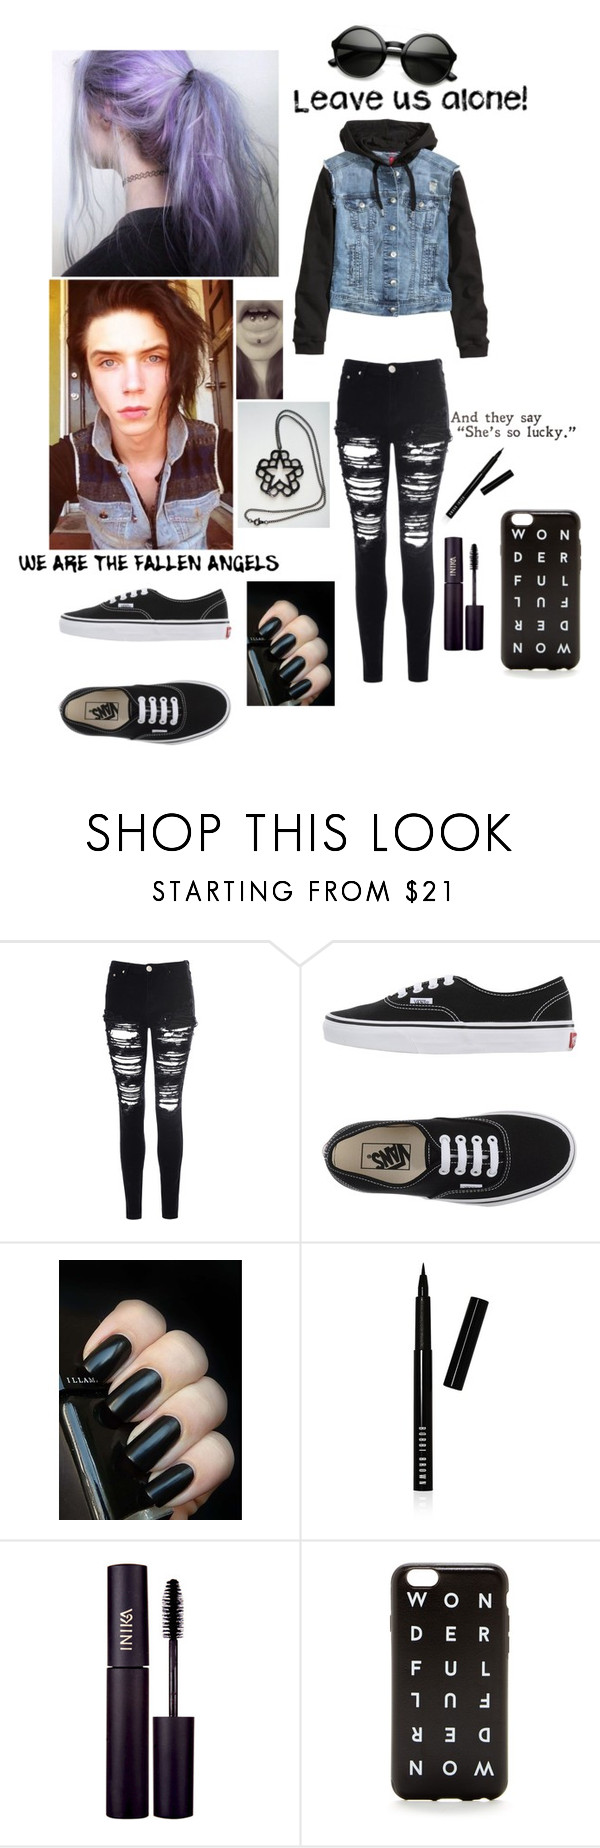 """Date with Andy ❤️"" by lauradirectioner1 ❤ liked on Polyvore featuring H&M, Glamorous, Vans, Bobbi Brown Cosmetics, INIKA and J.Crew"